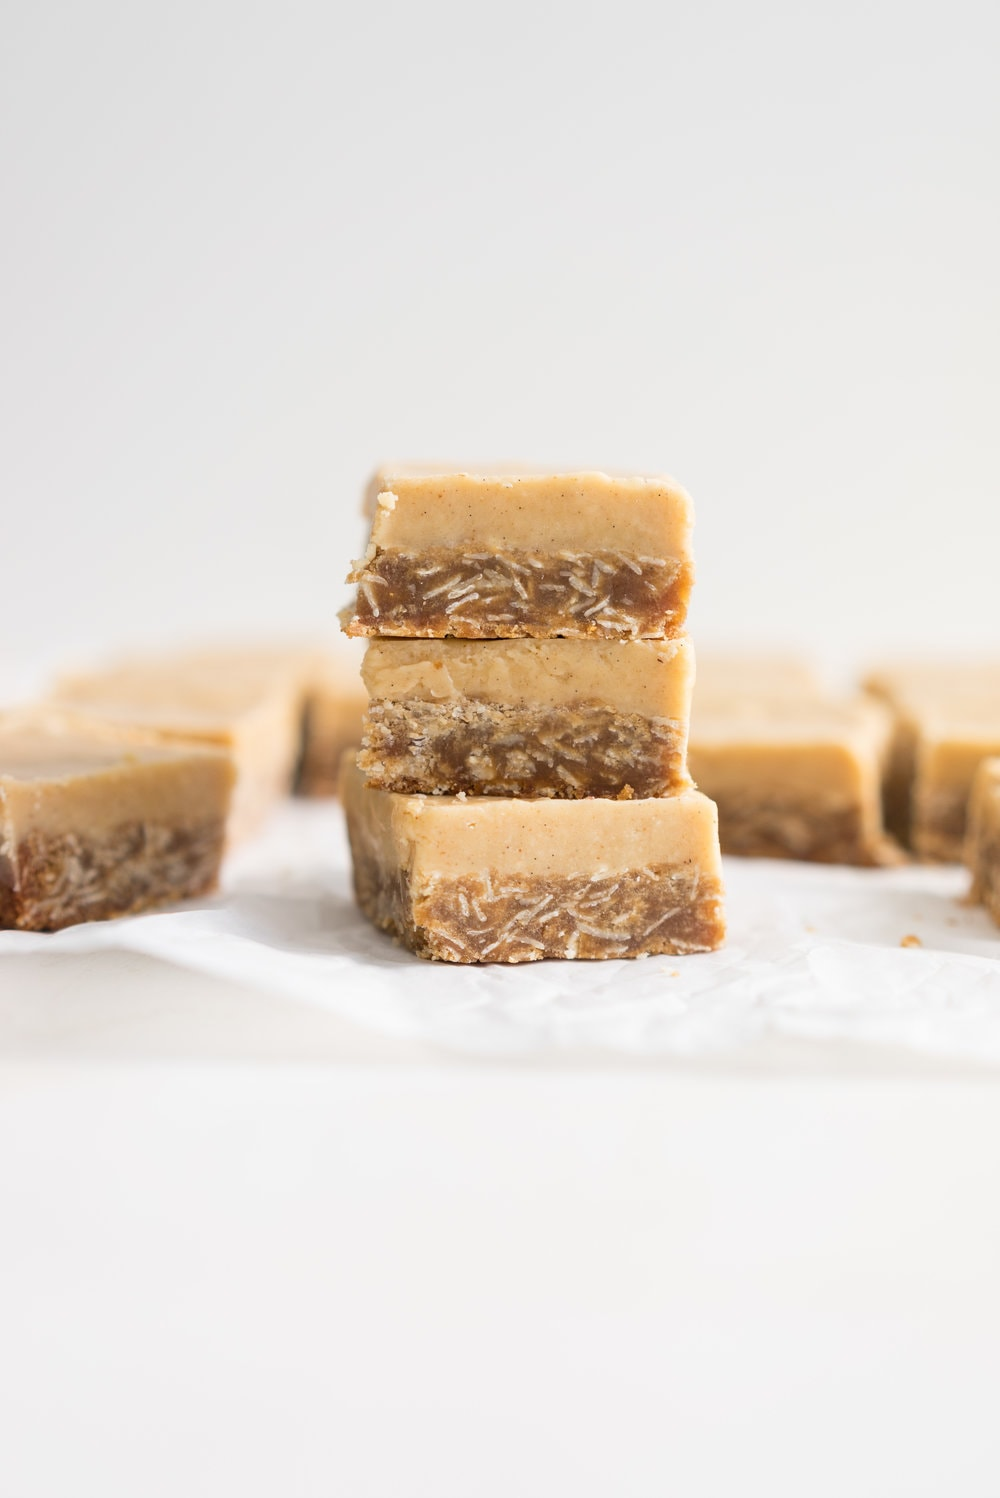 Ginger crunch - a classic 'slice' or bar recipe from New Zealand. A crumbly oaty base is topped with a sweet, spicy ginger icing. The perfect treat.